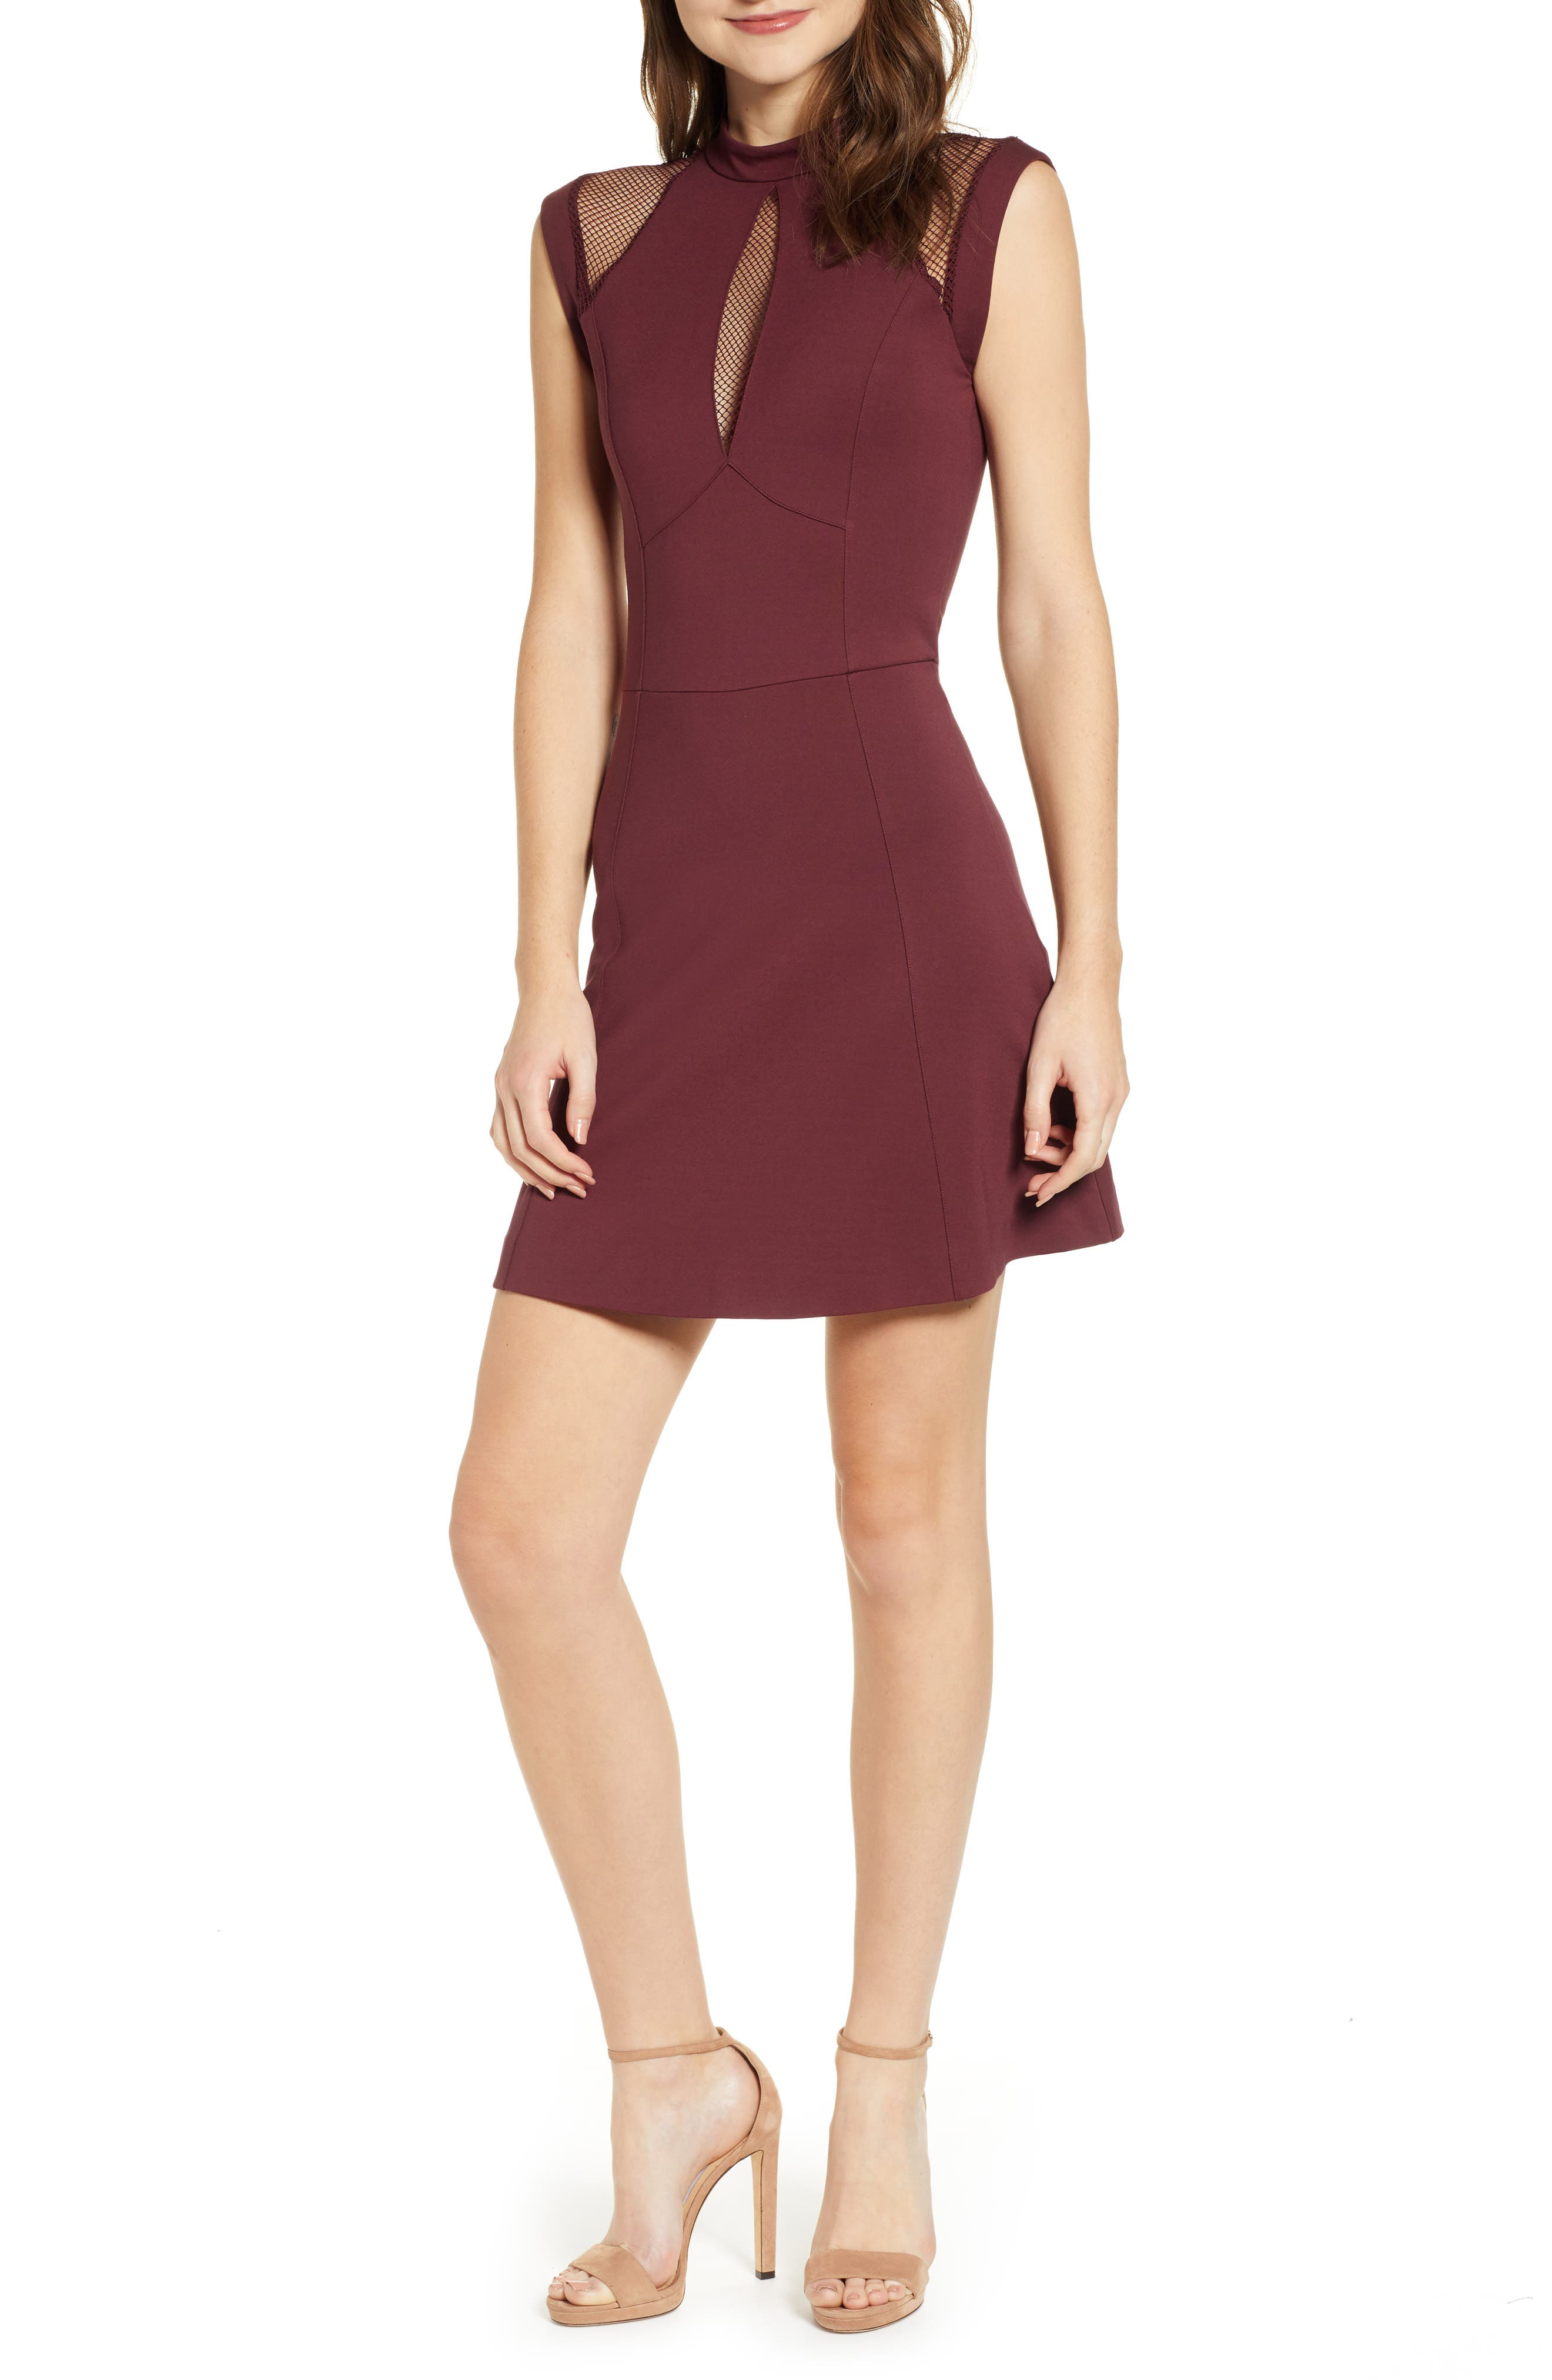 Sentimental Ny Galactica Fit & Flare Dress, Red